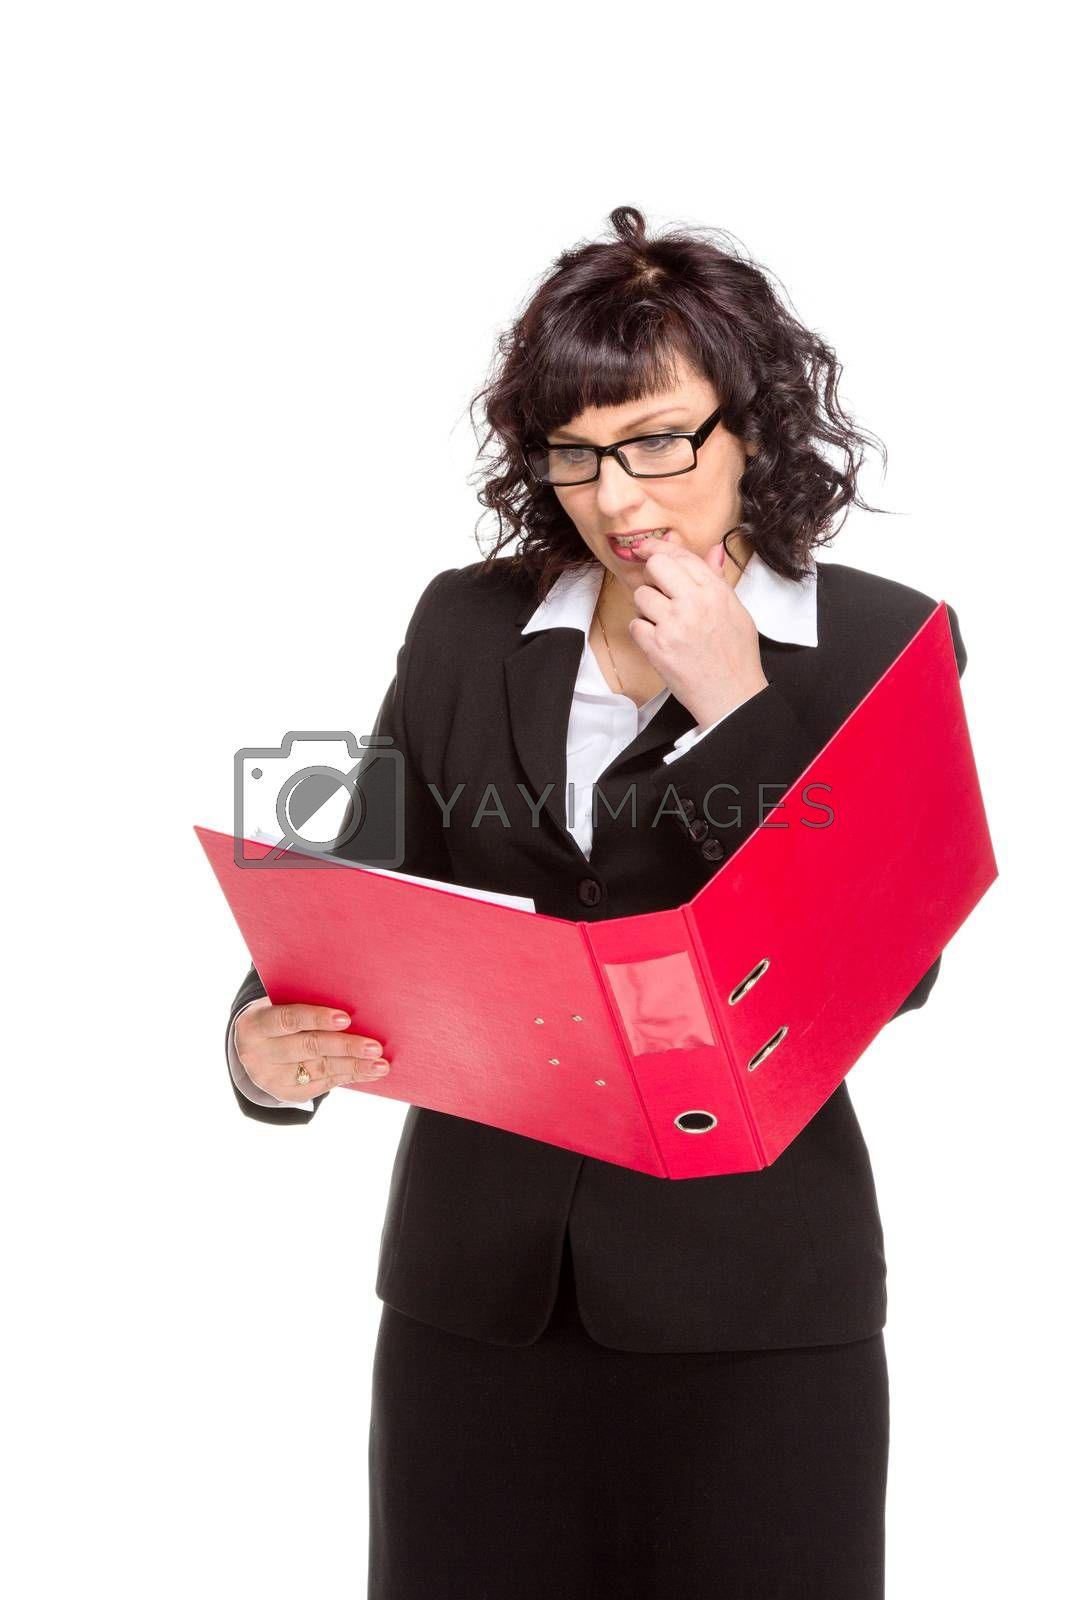 Royalty free image of Cheerful senior business woman with folder by gsdonlin